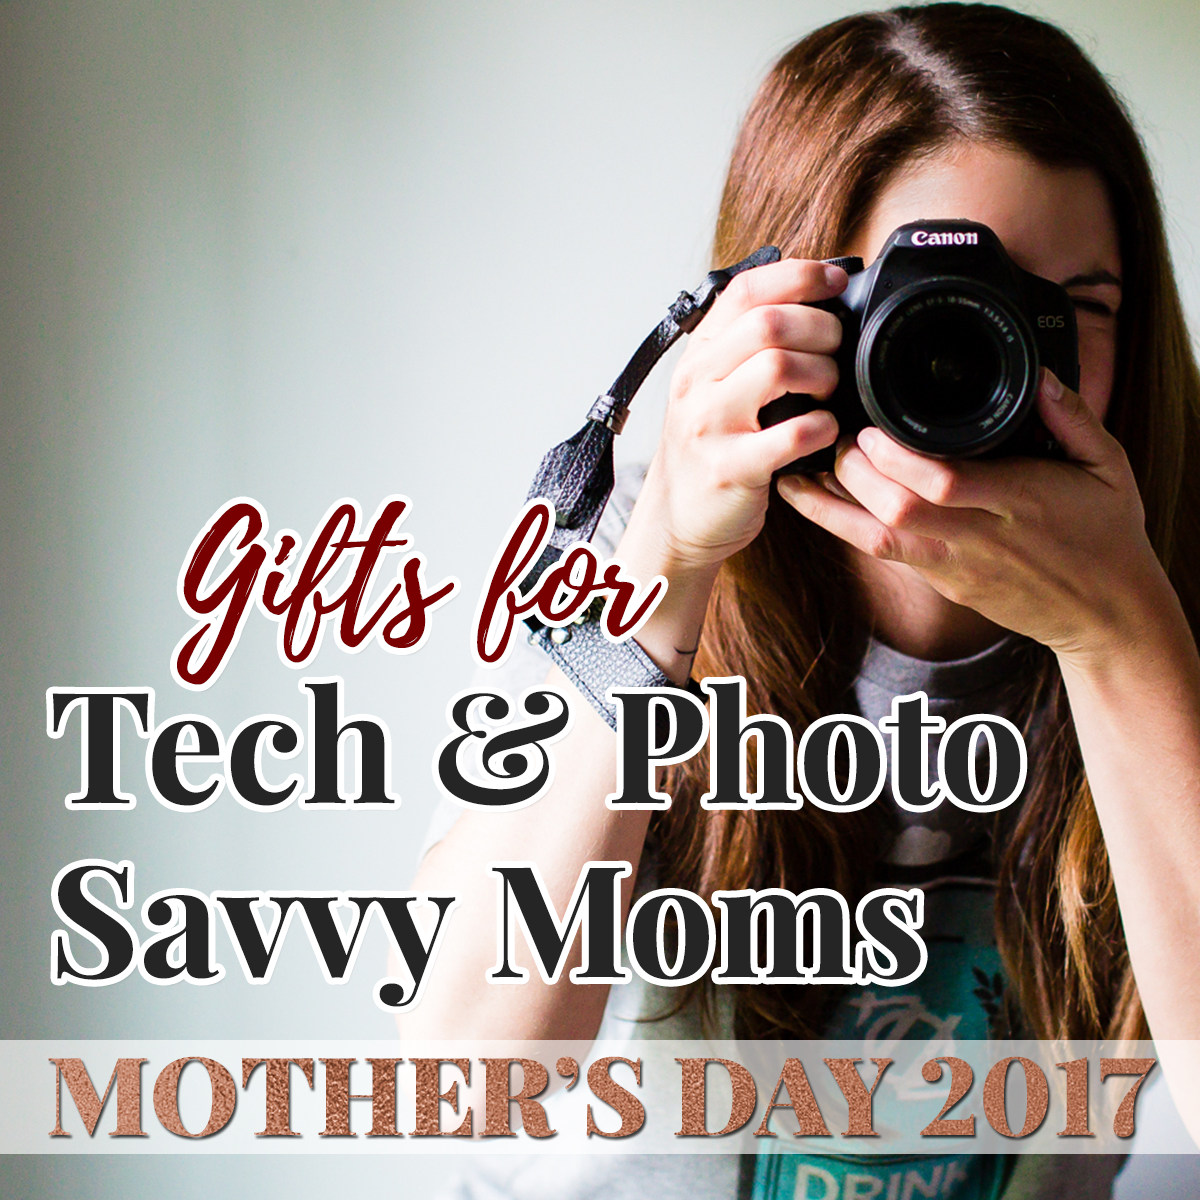 mother 39 s day 2017 gifts for the tech and photo savvy moms. Black Bedroom Furniture Sets. Home Design Ideas